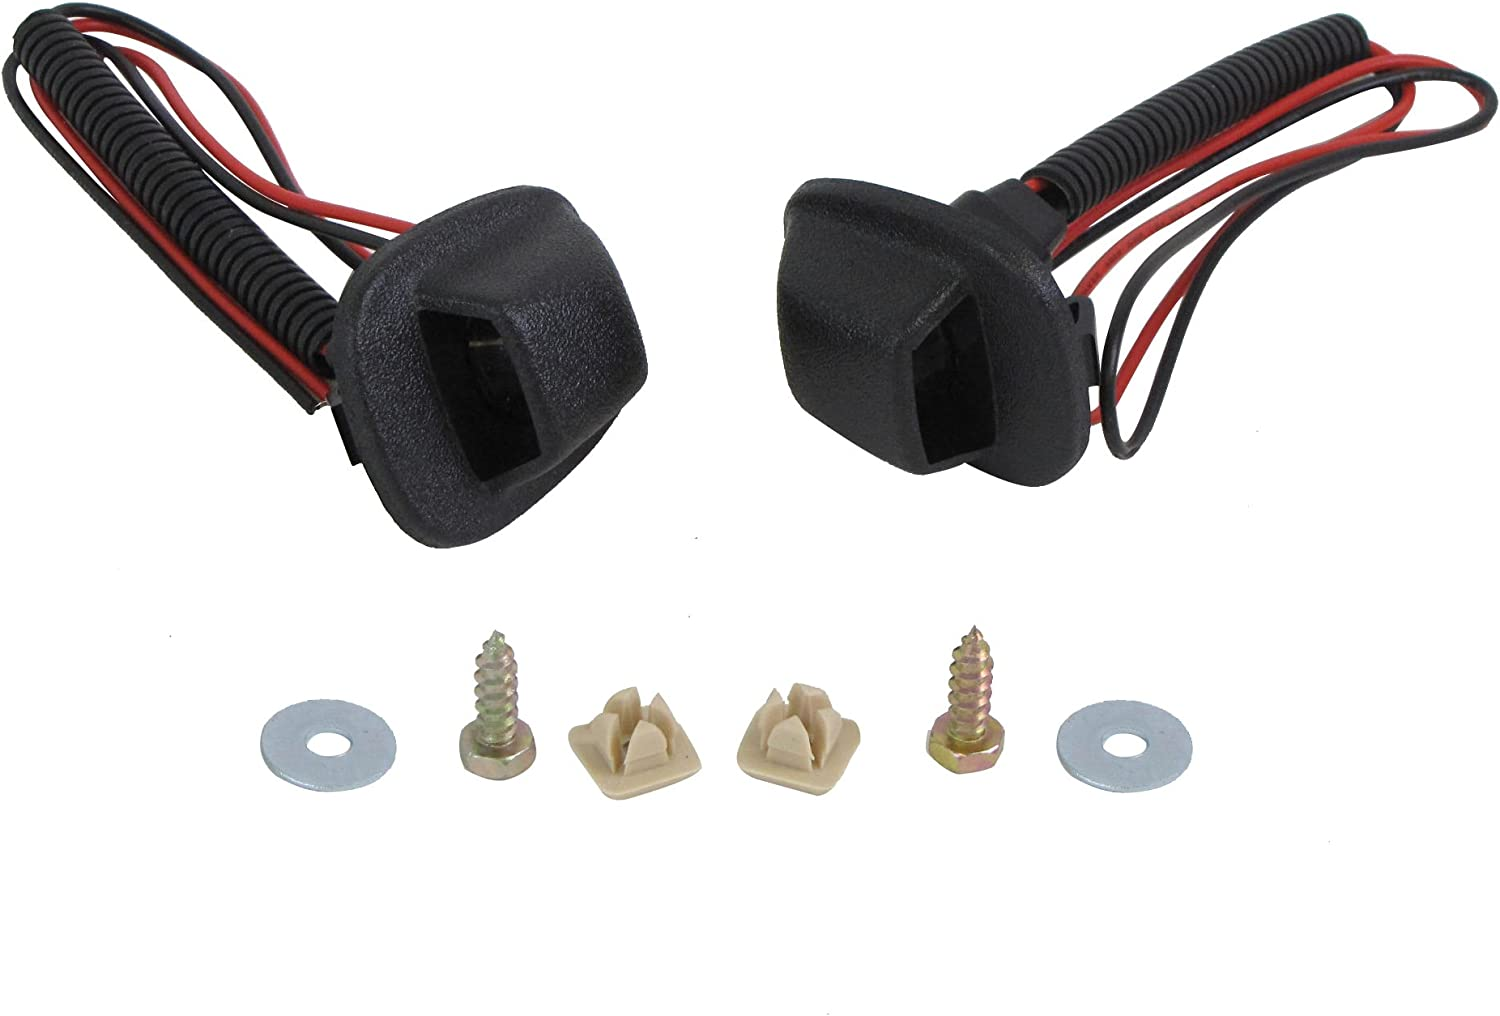 For 98-04 FRONTIER REAR STEP BUMPER LICENSE LIGHT KIT WITH LENS , BULB /& CABLE , SCREWS